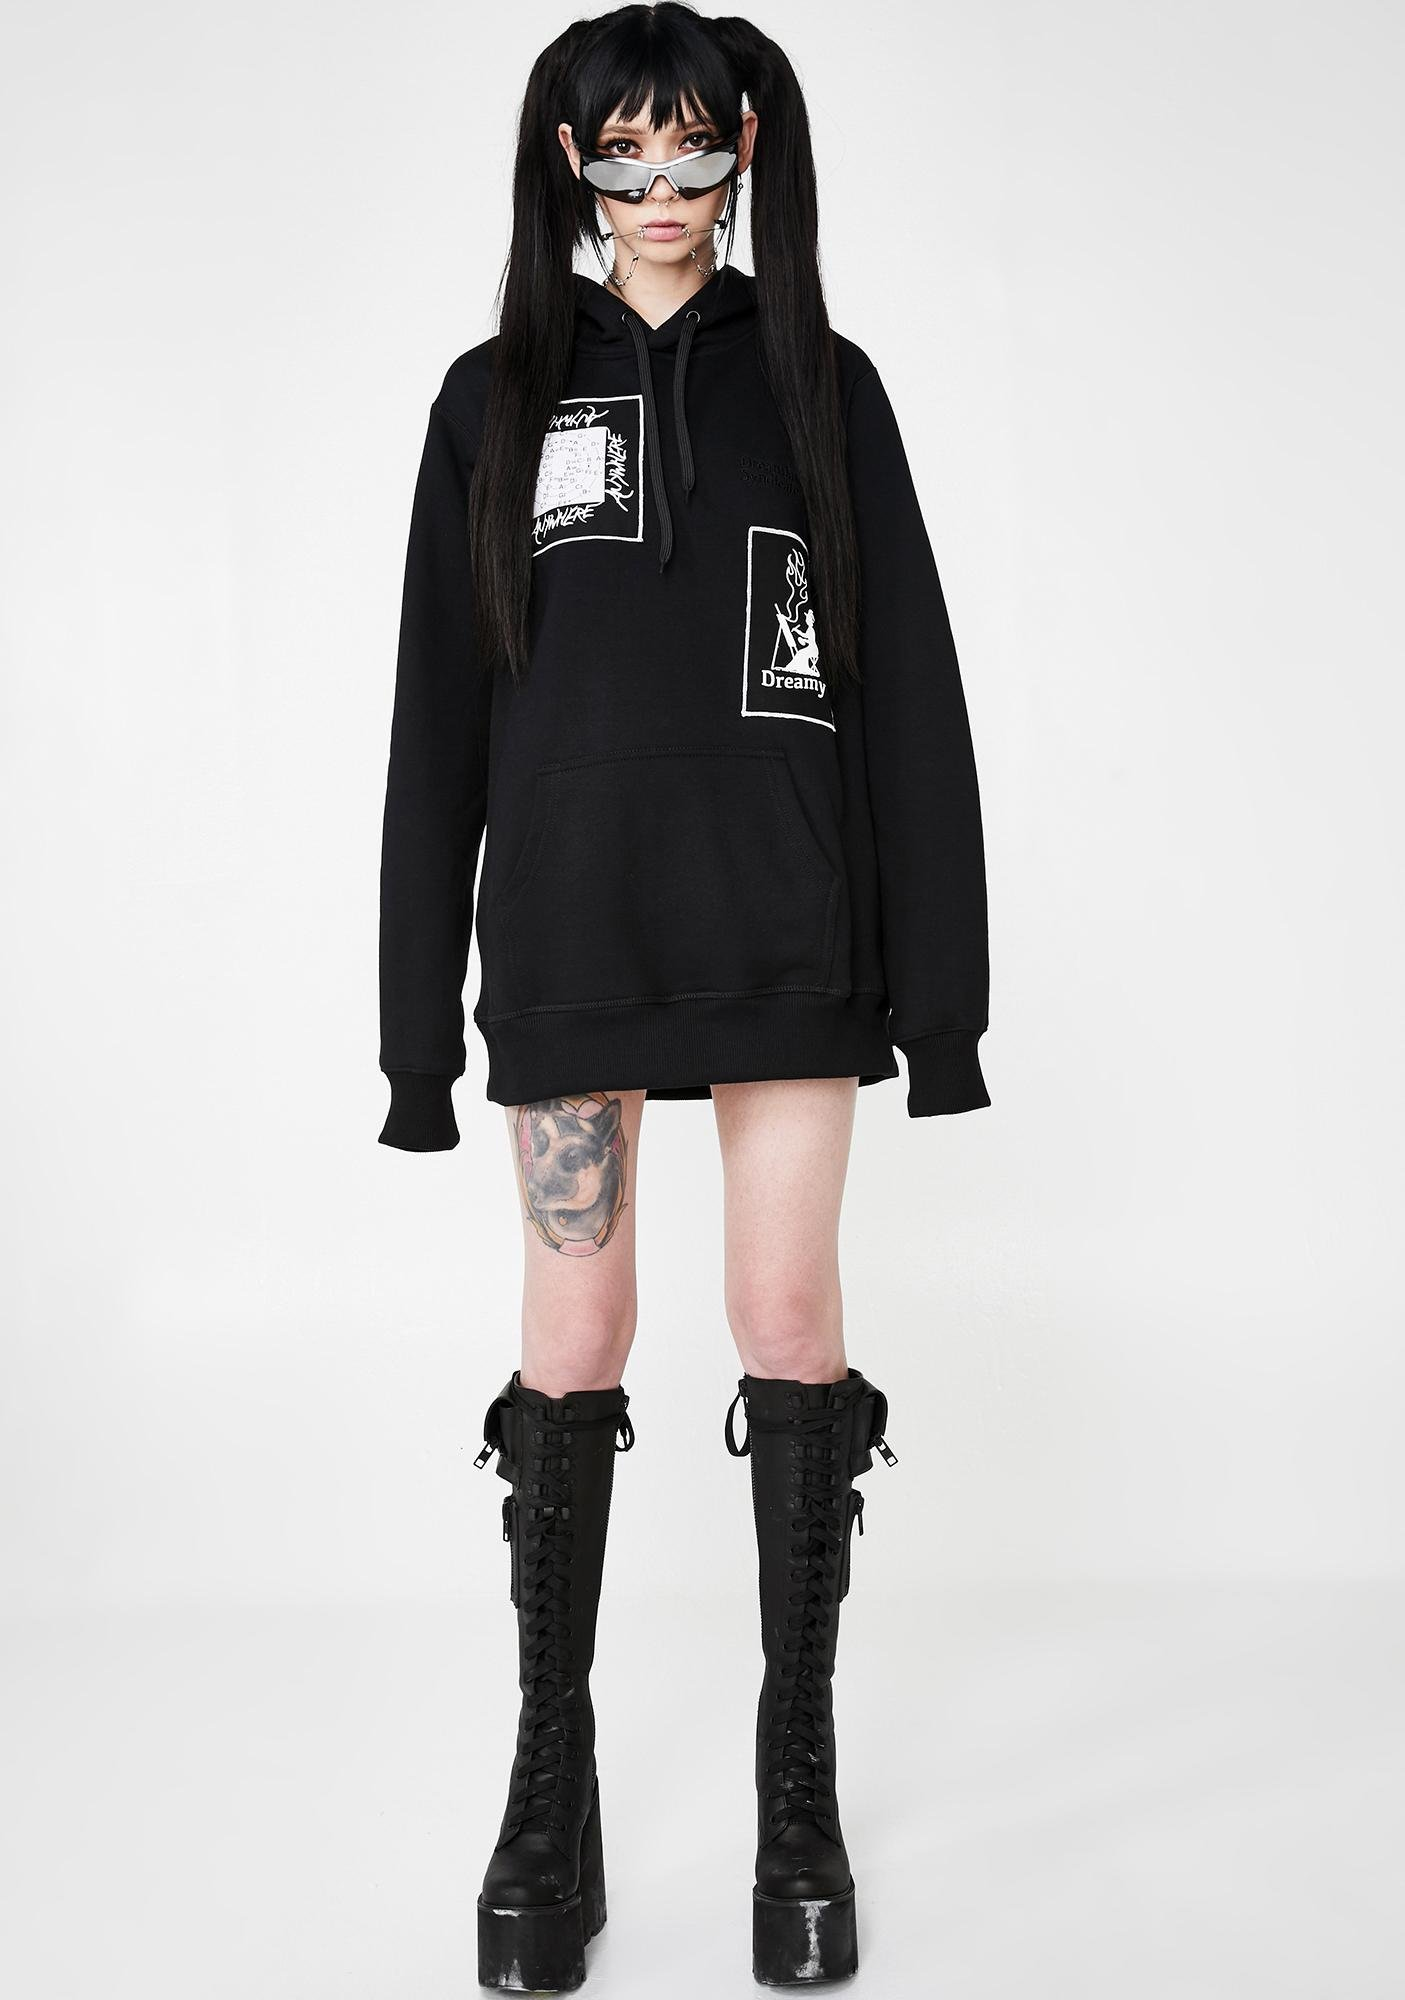 Dreamland Syndicate Hoodie With Patches And Embroidery